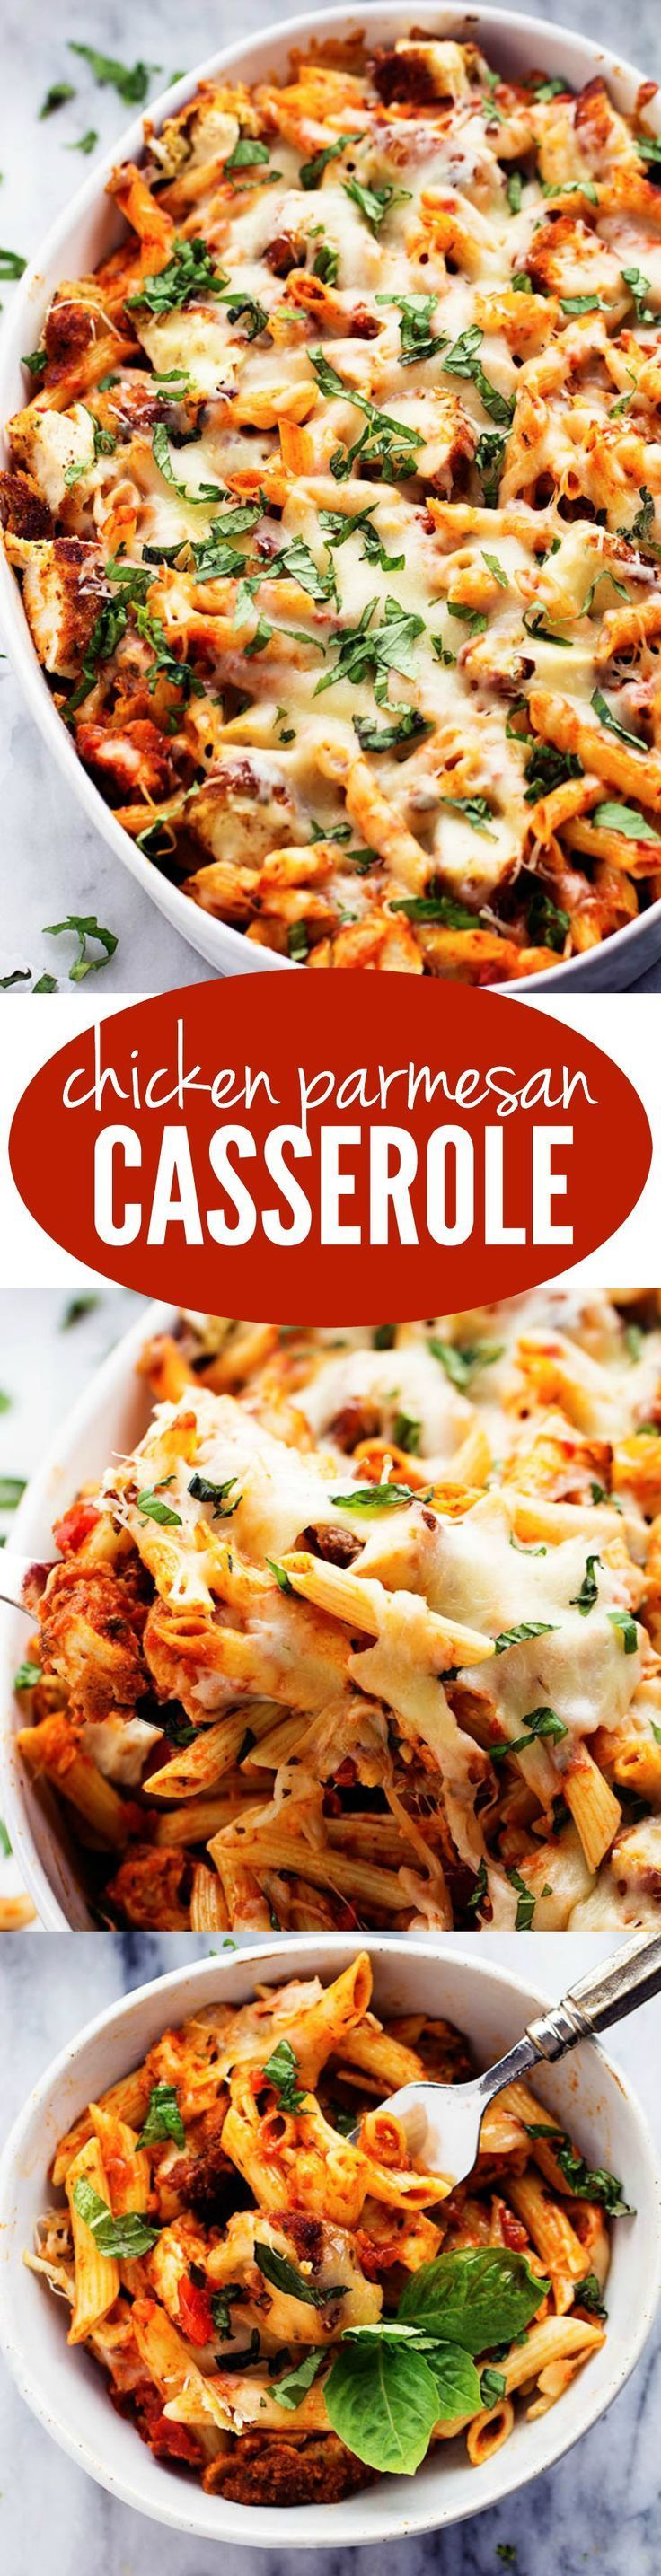 Weight watchers chicken parm casserole recipe